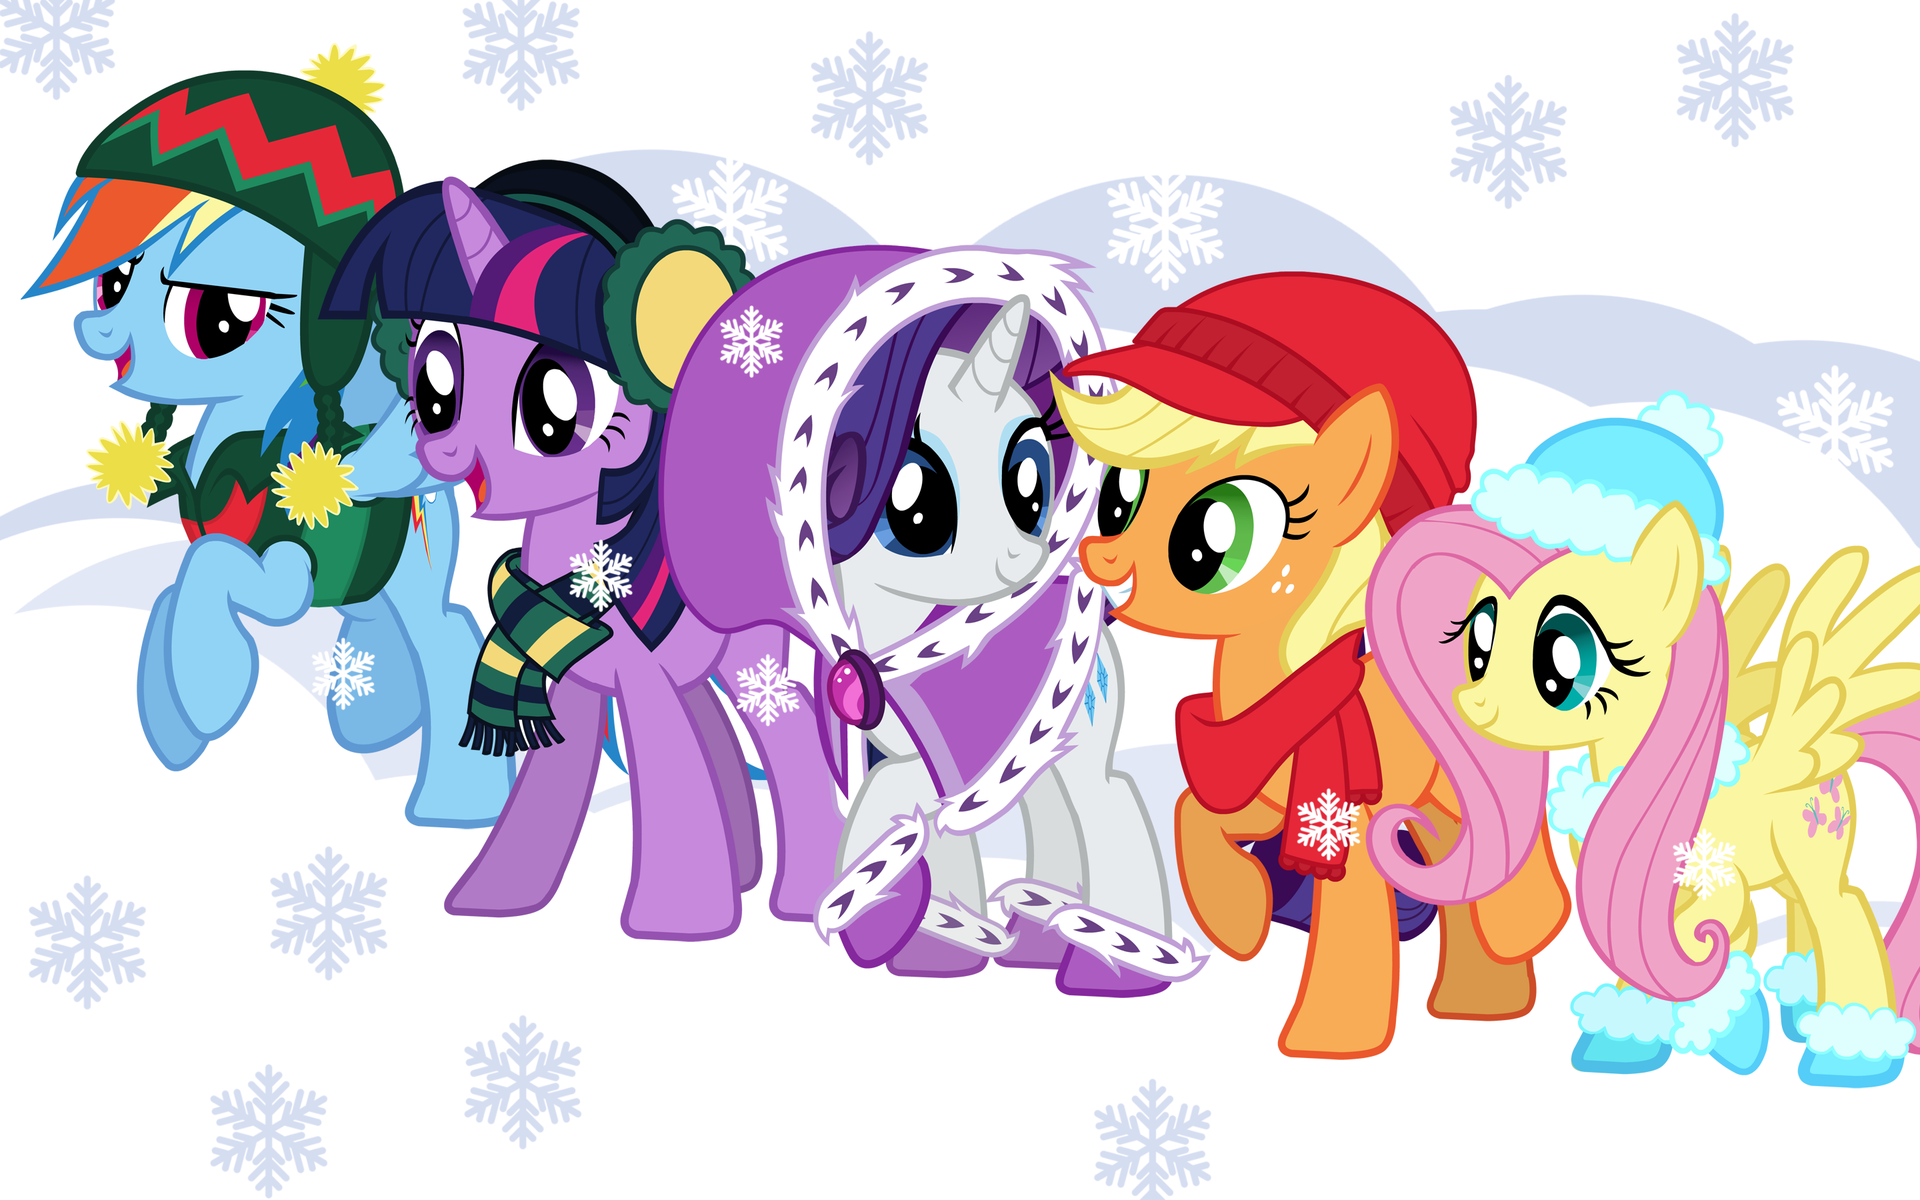 Free Download My Little Pony Wallpaper 15859 1920x1200 For Your